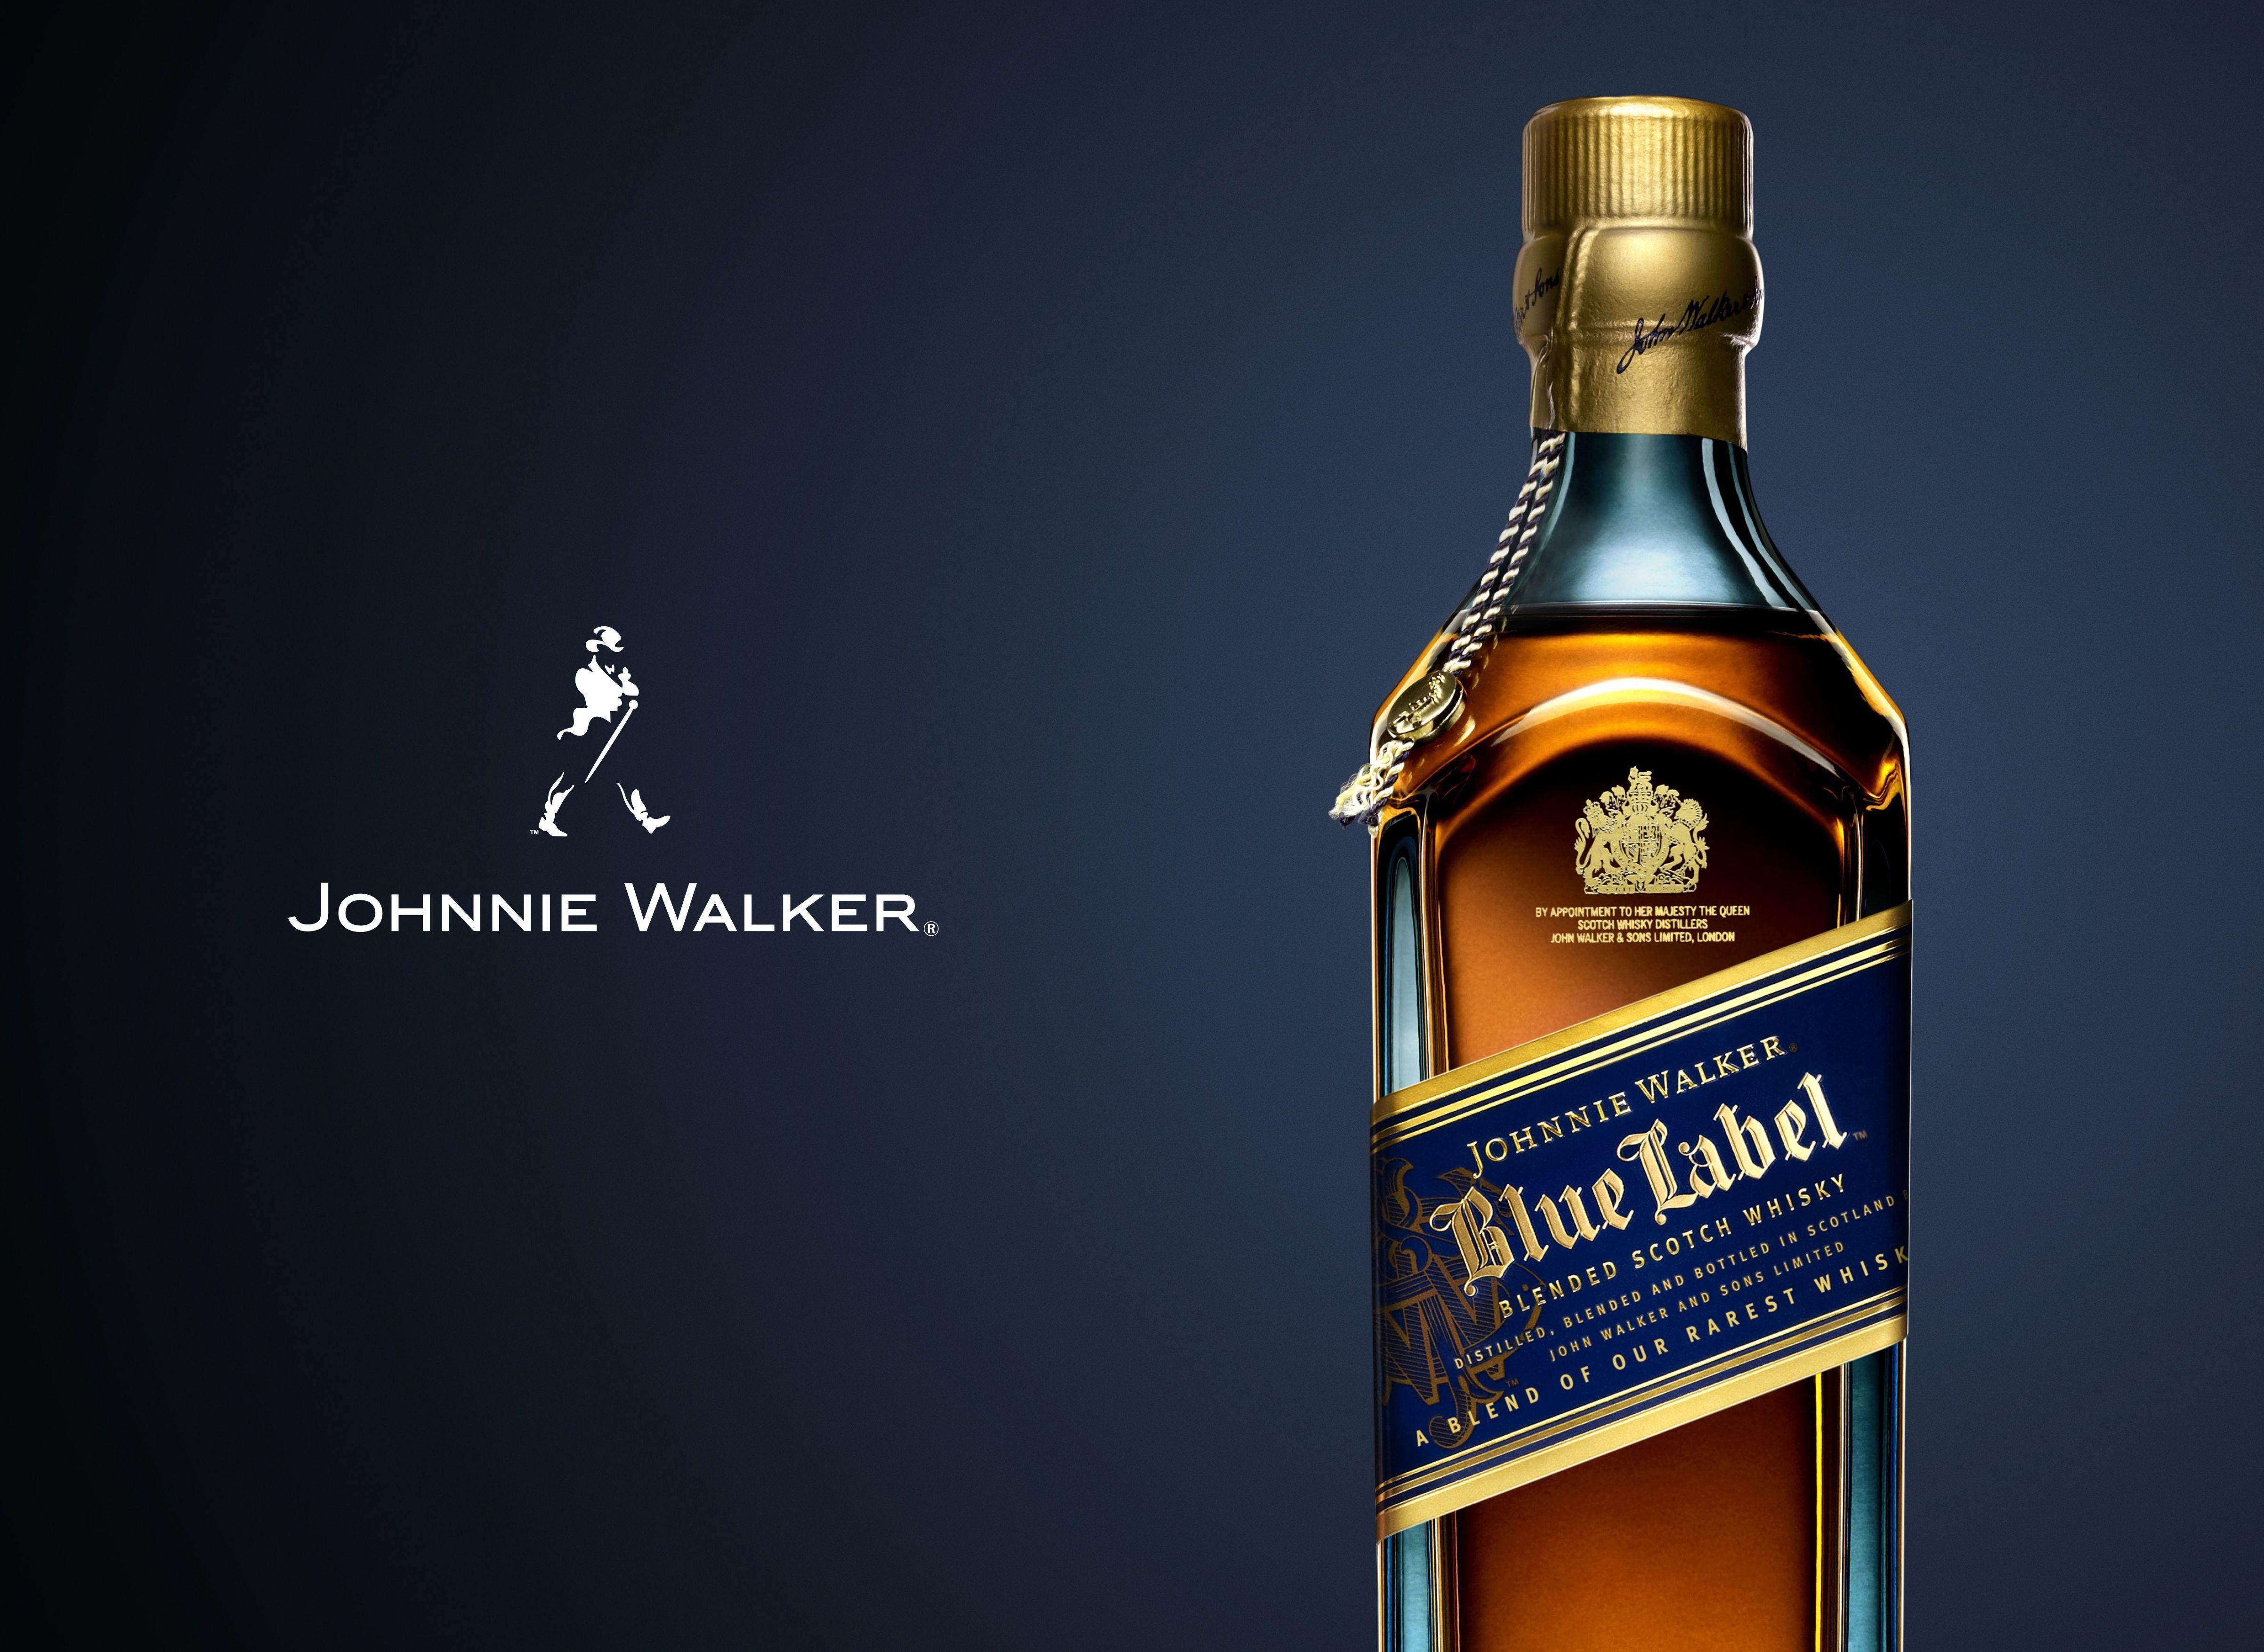 High Quality Johnnie Walker Wallpaper | Full HD Pictures